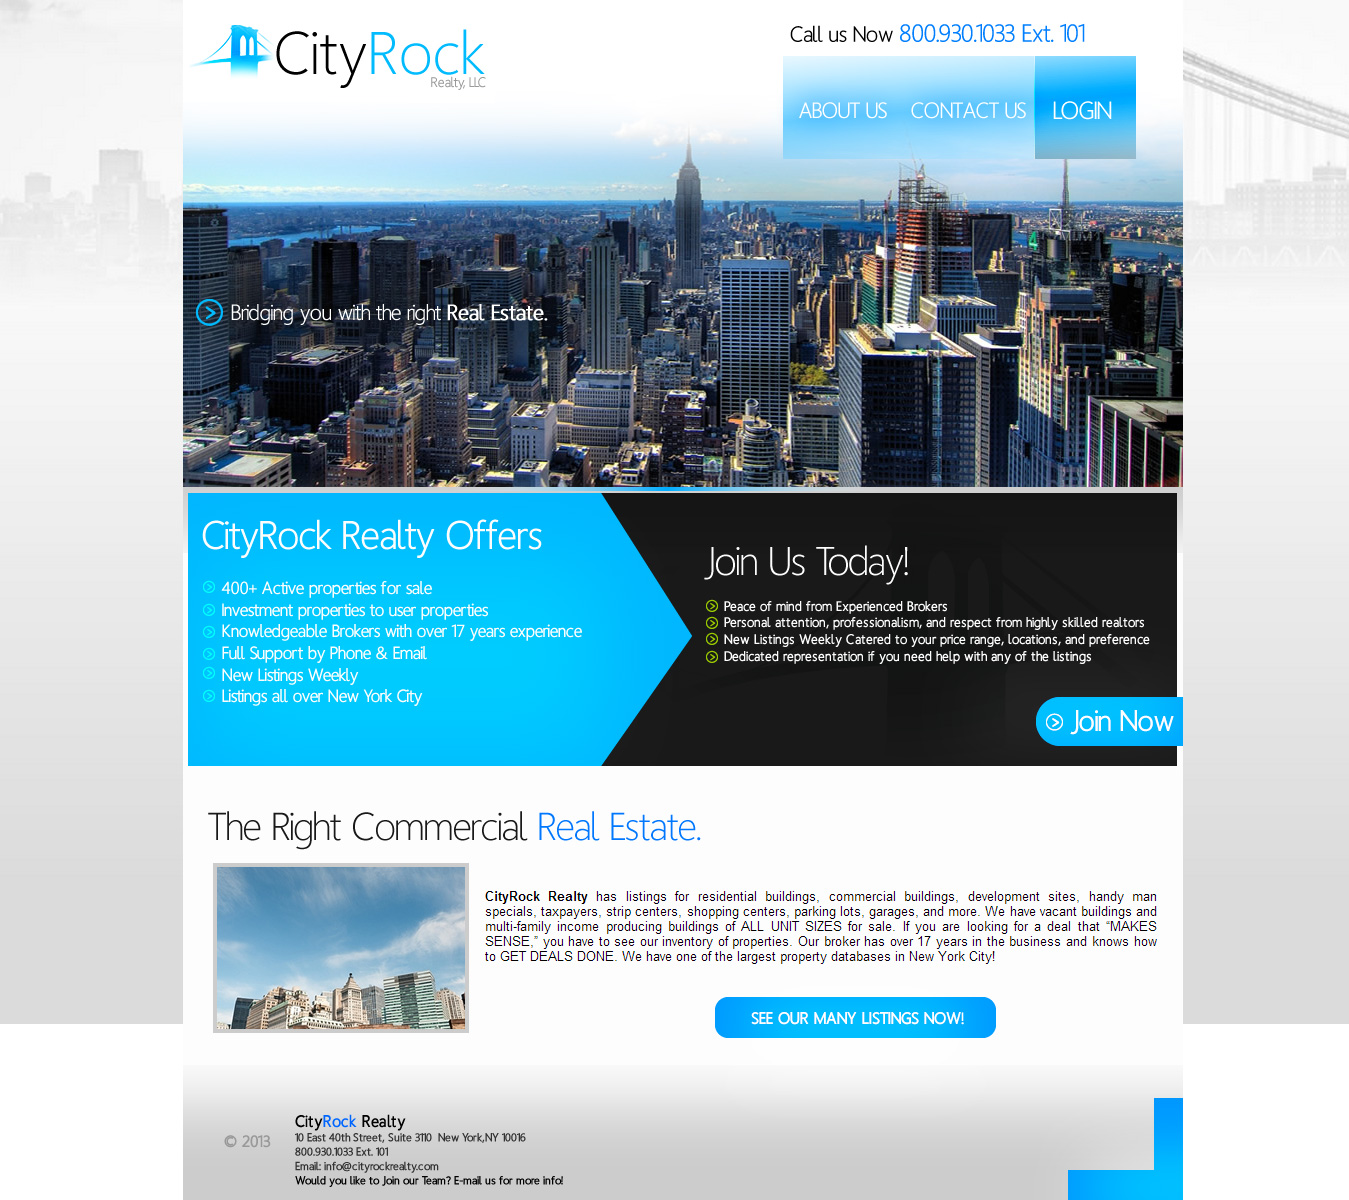 CityRock-Realty---Bridging-You-With-the-Right-Real-Estate